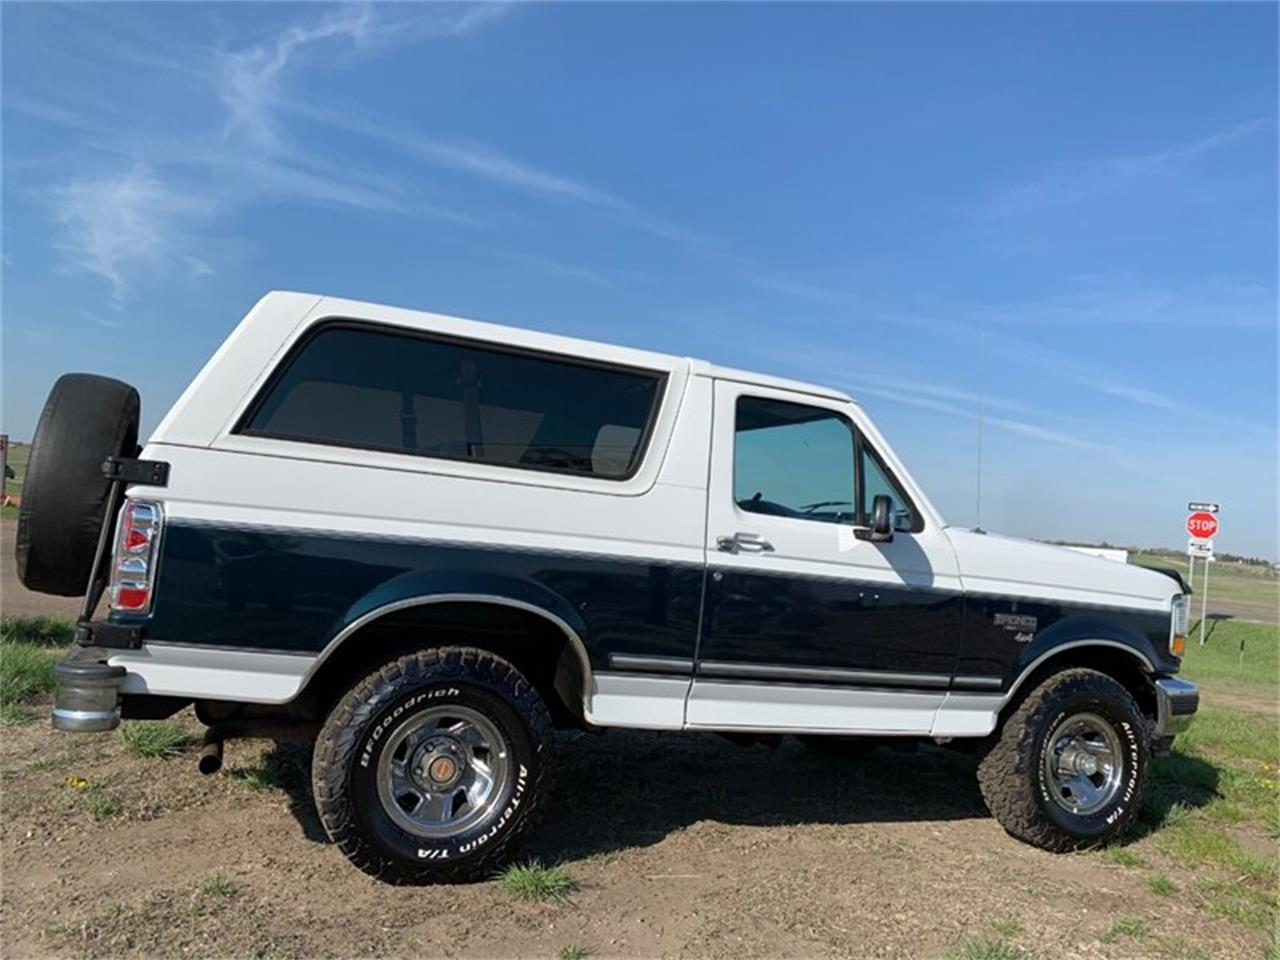 Large Picture of 1994 Ford Bronco located in North Dakota - $15,890.00 - Q4UY